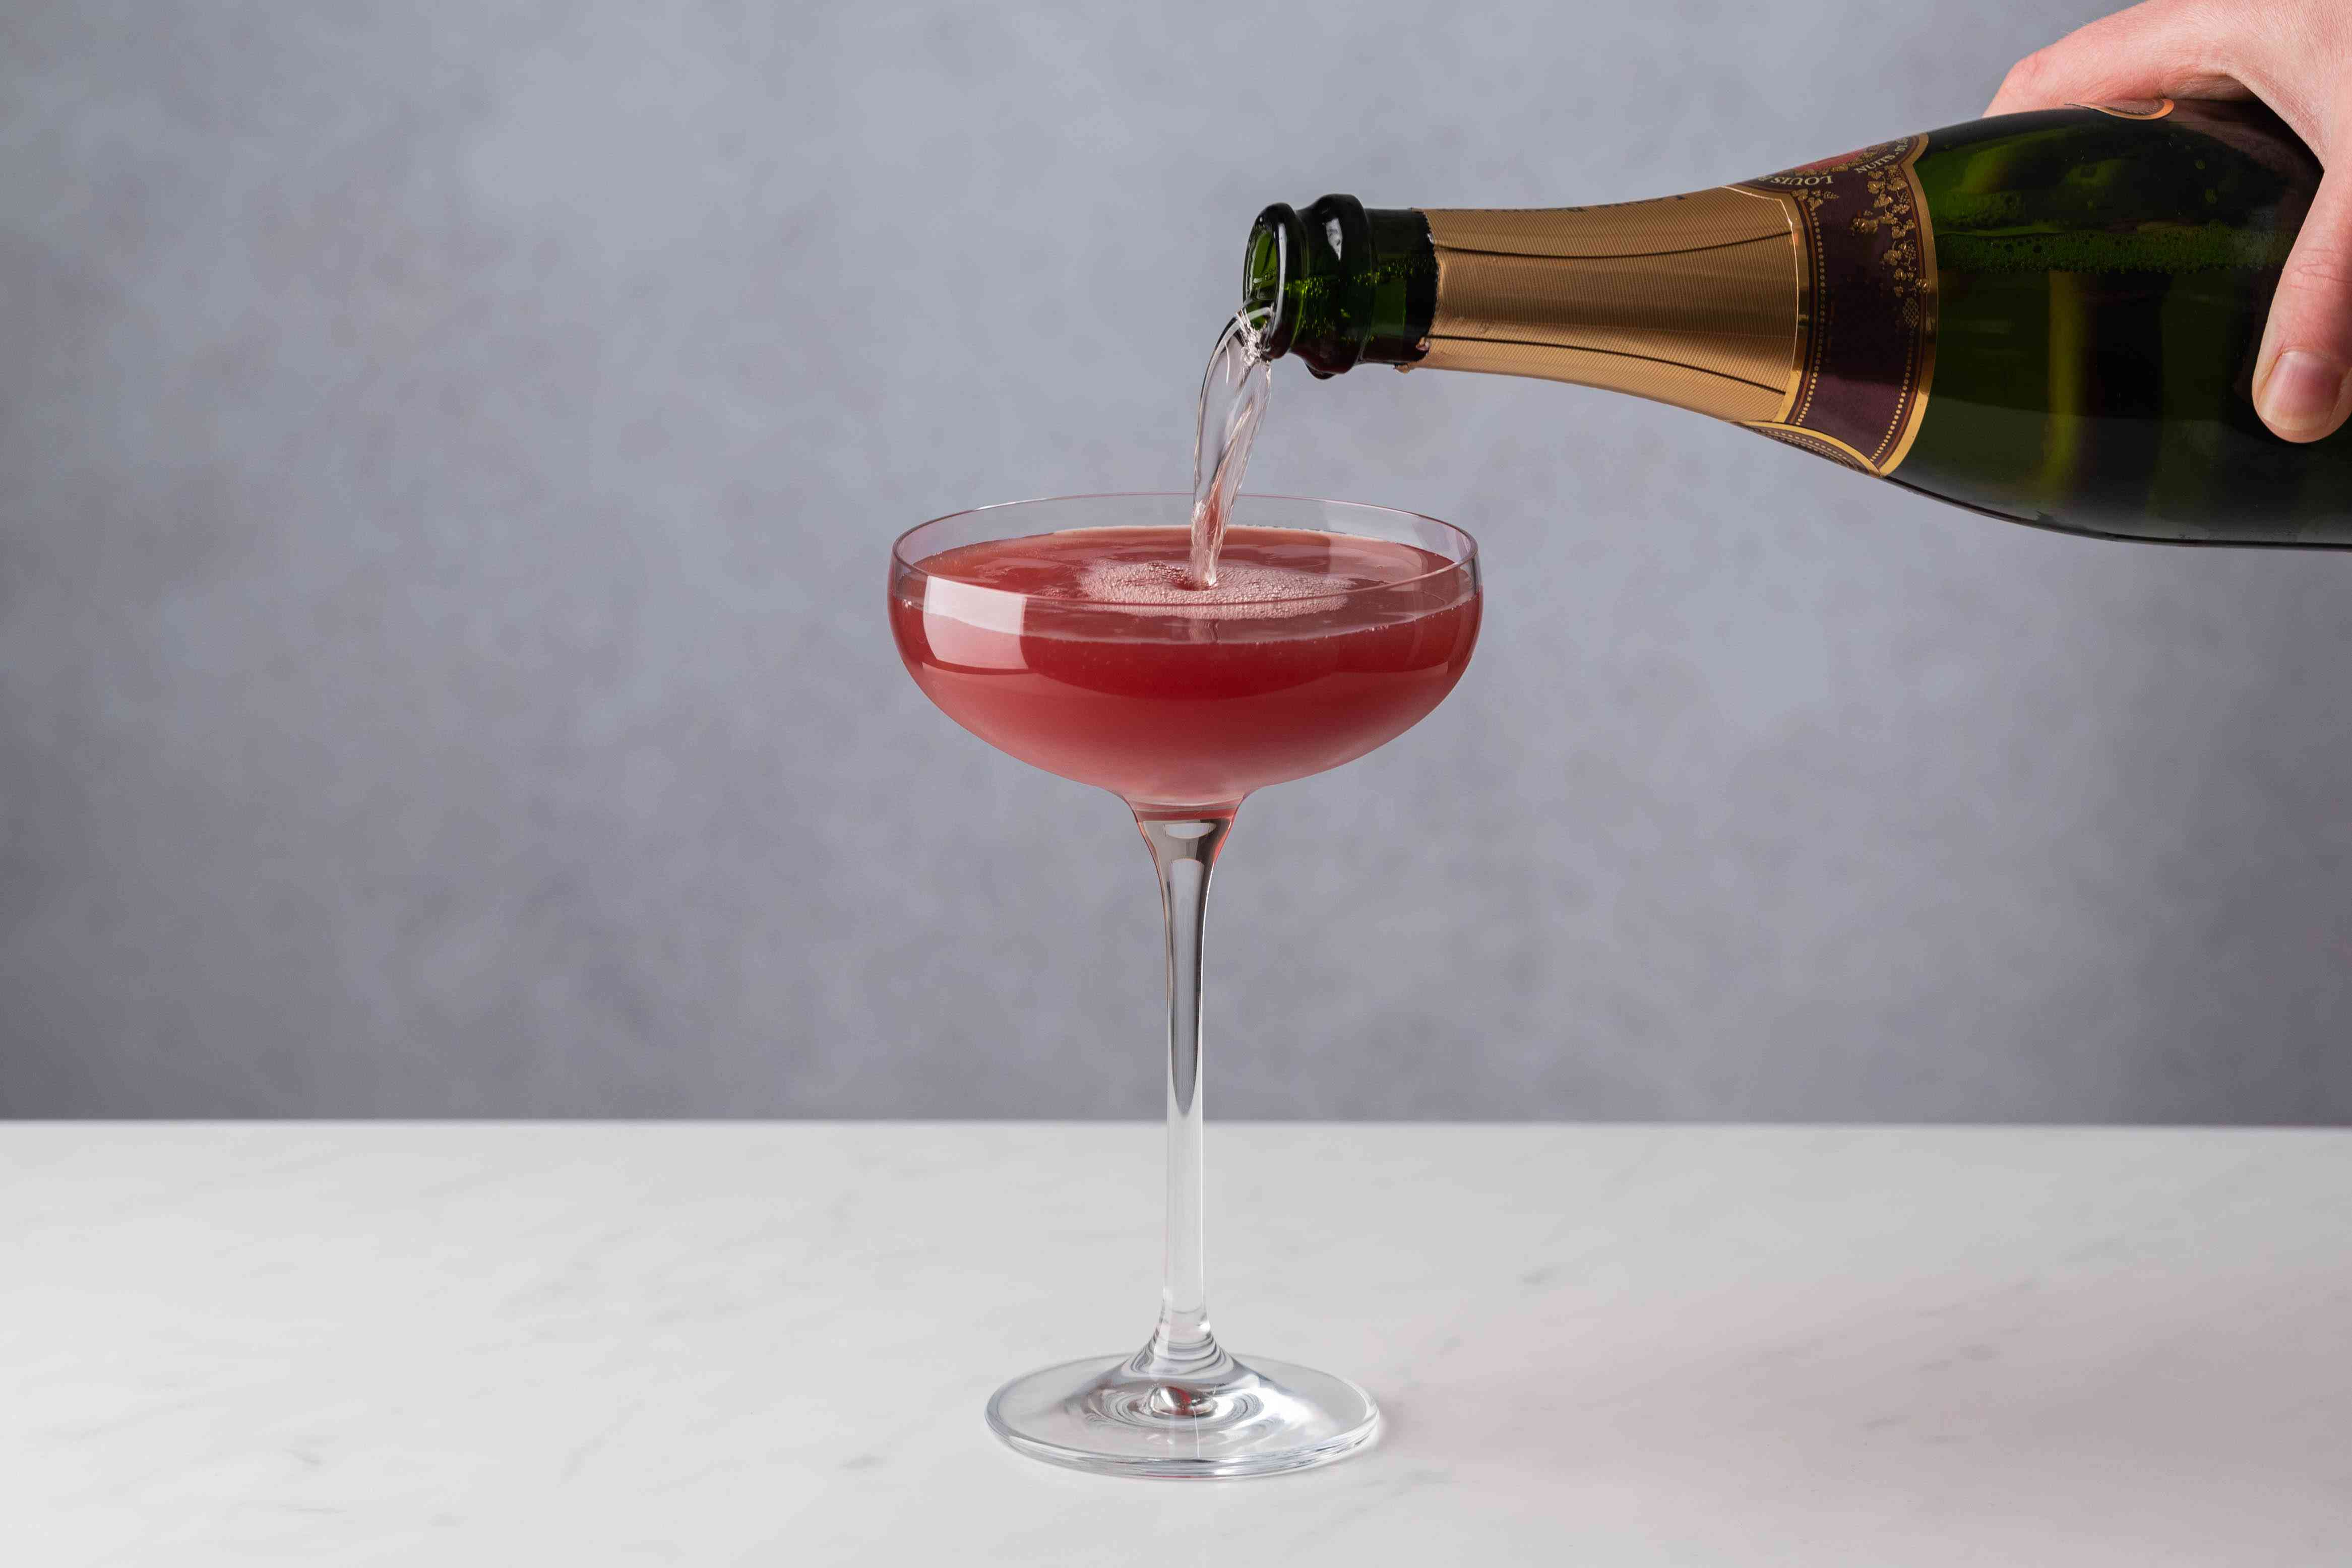 top the cocktail with Champagne